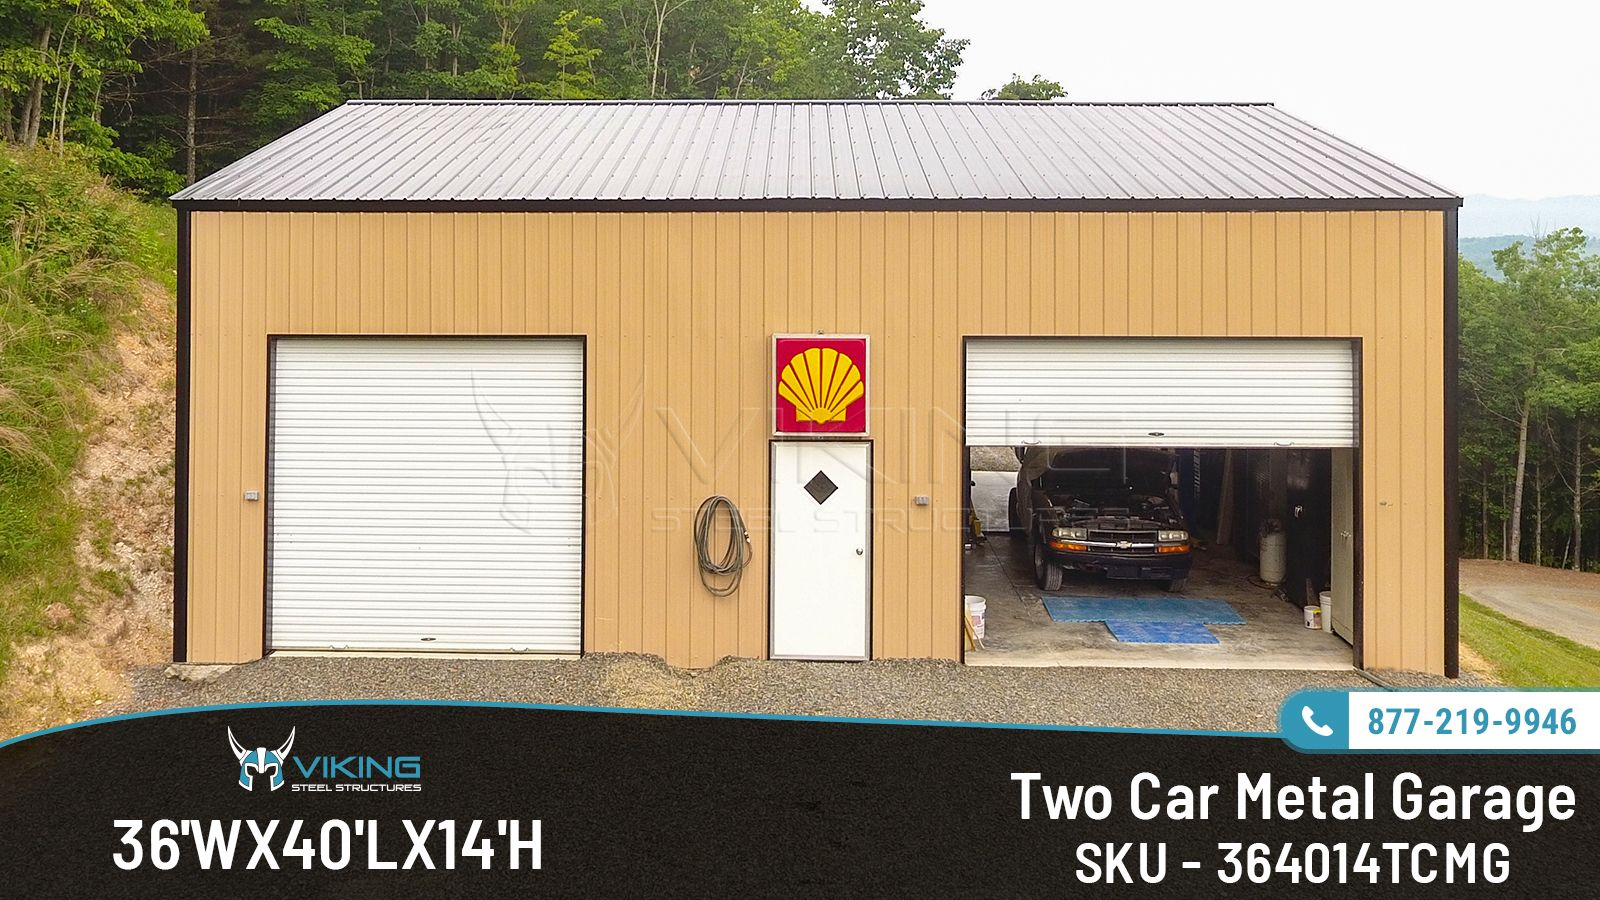 36x40x14 Two Car Metal Garage Metal Garages Metal Garage Buildings Metal